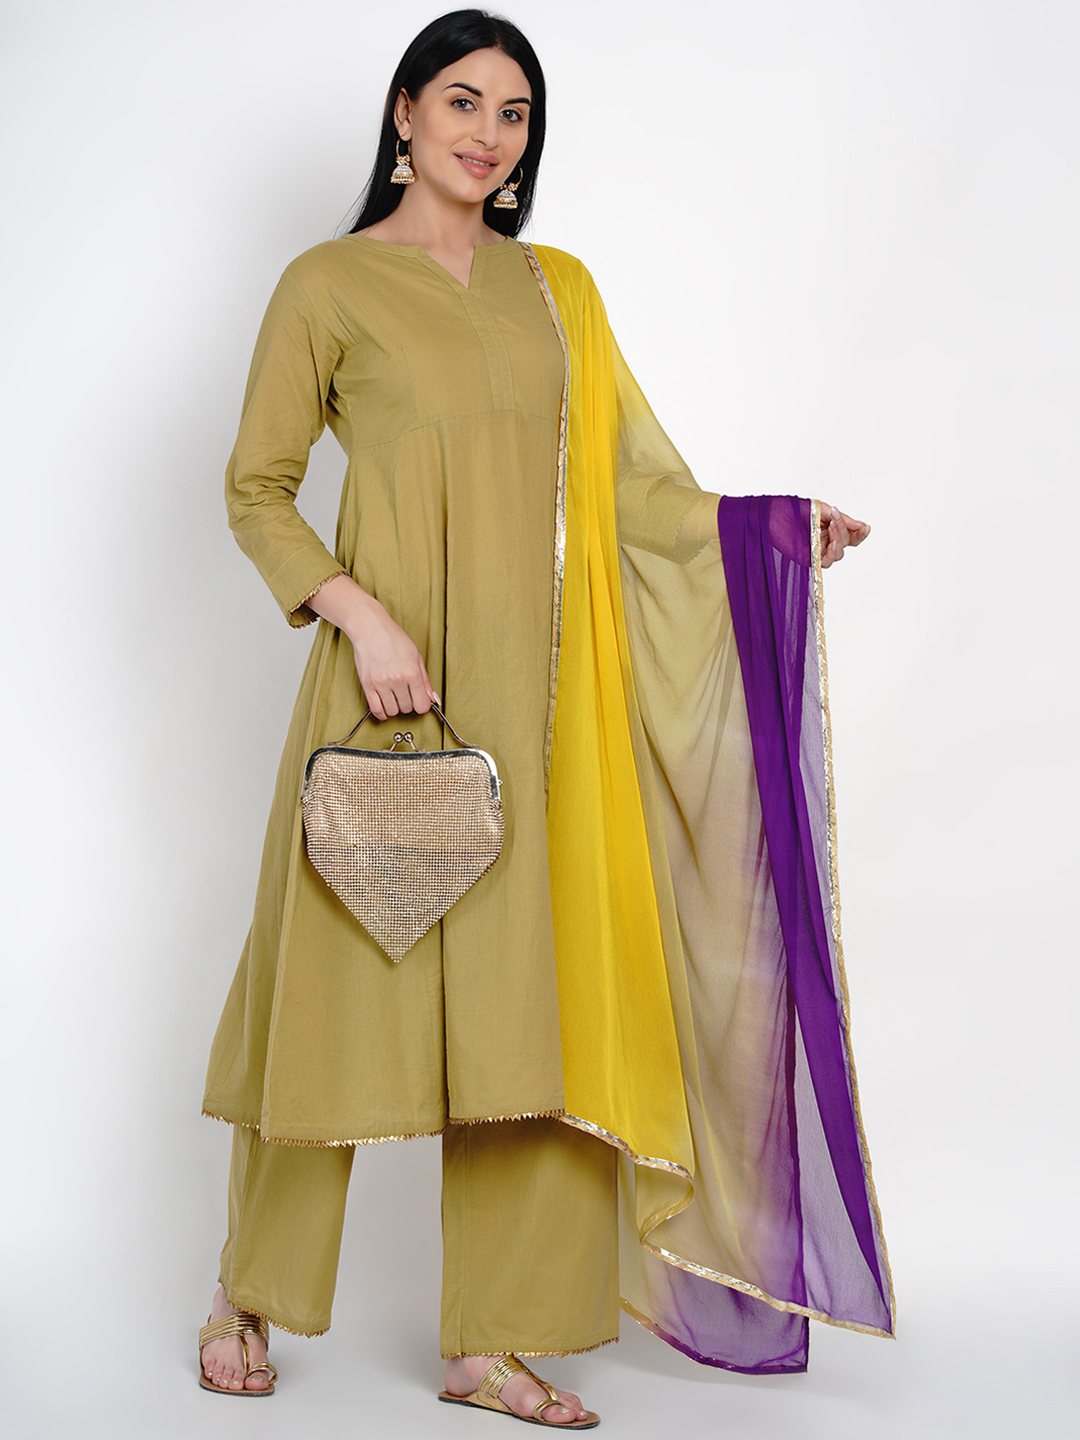 Fabnest   Fabnest Womens Cotton Olive Flared Kurta And Pant Set With Gota Edging And Tie And Dye Dupatta With Gota